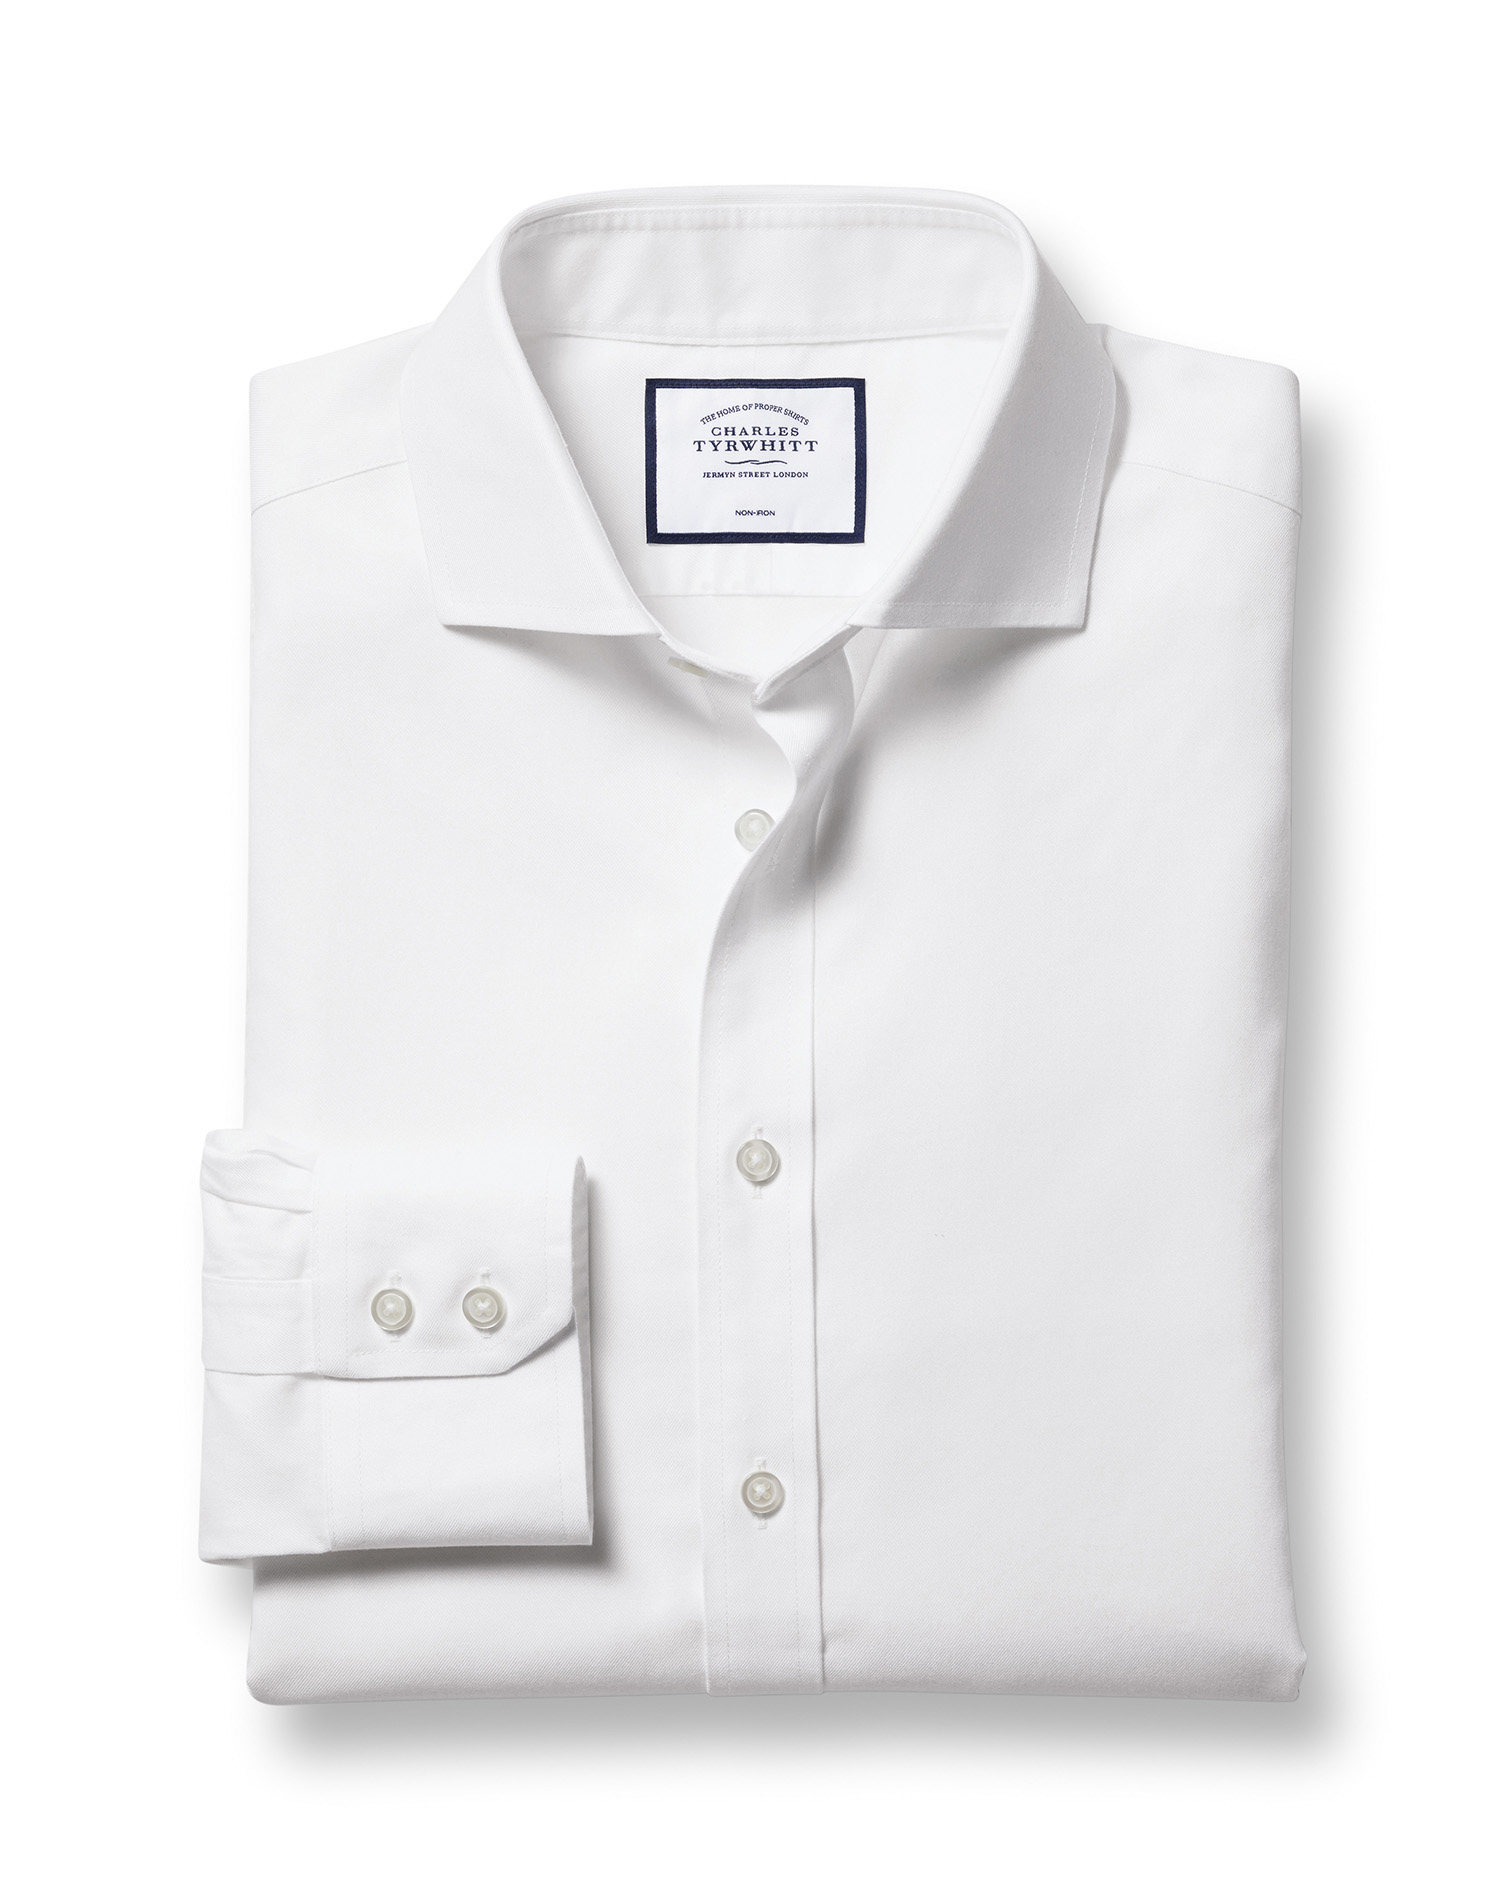 Slim Fit Cutaway Non-Iron Twill White Cotton Formal Shirt Single Cuff Size 18/35 by Charles Tyrwhitt